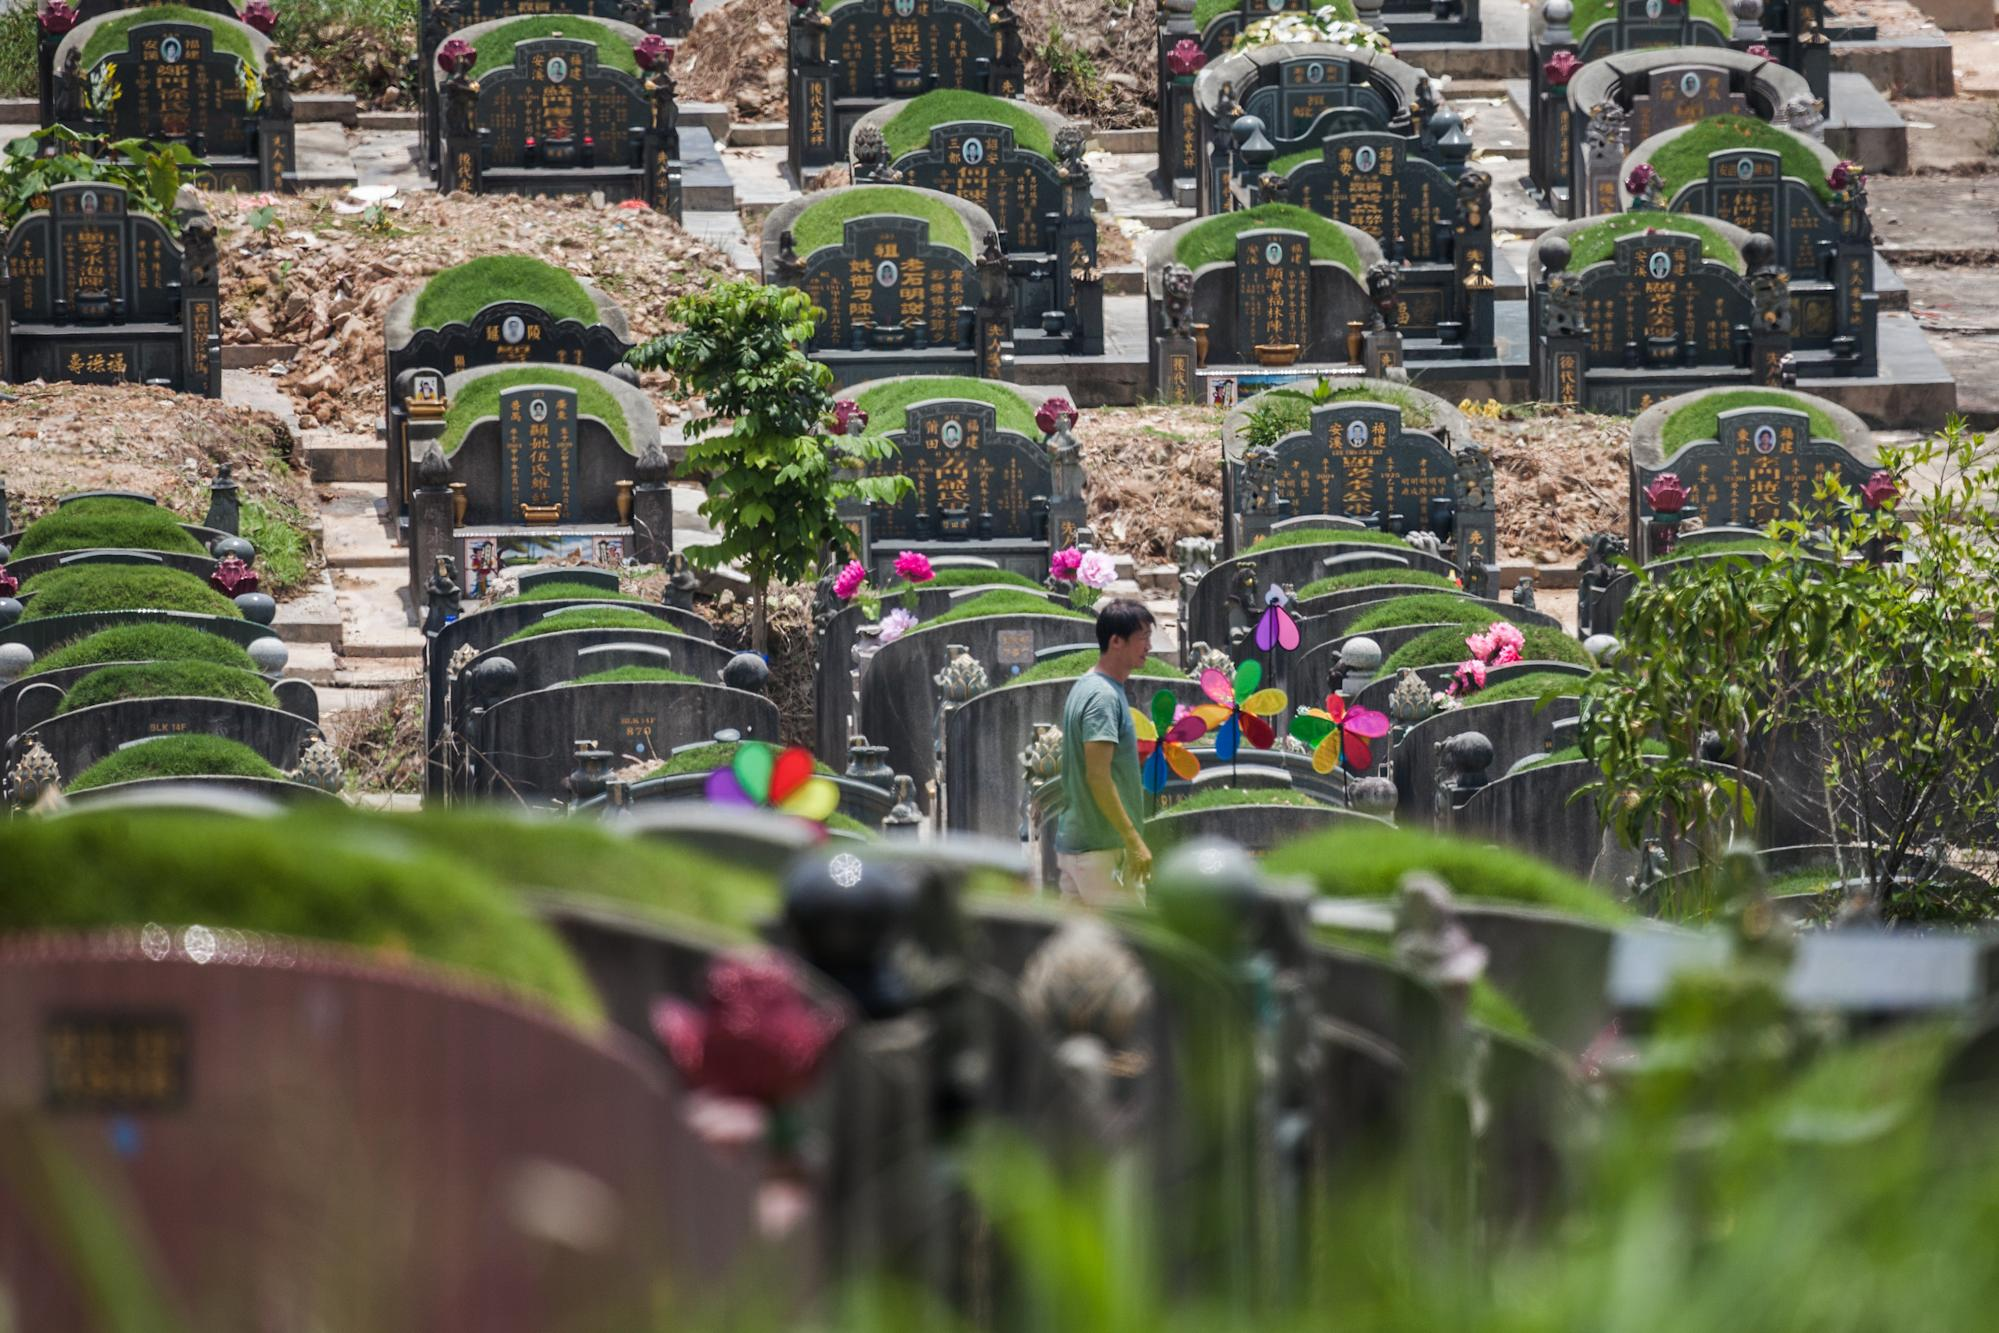 Families visiting cemeteries, columbaria during Qing Ming period limited to 8 per group